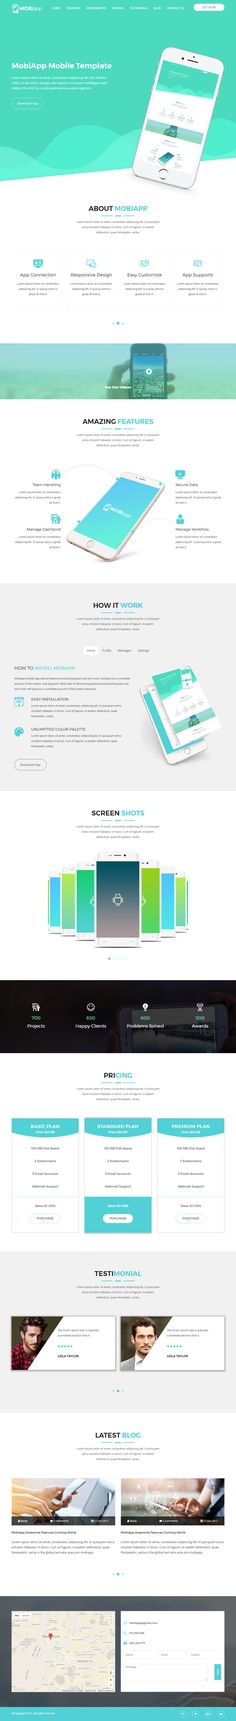 Mobiapp is Premium full Retina Responsive HTML5 Template. Bootstrap 3 Framework. #OnePage. If you like this #MobileAppTemplate visit our handpicked list of best HTML5 #OnePageWebsite Templates at: http://www.responsivemiracle.com/best-html5-one-page-website-templates/